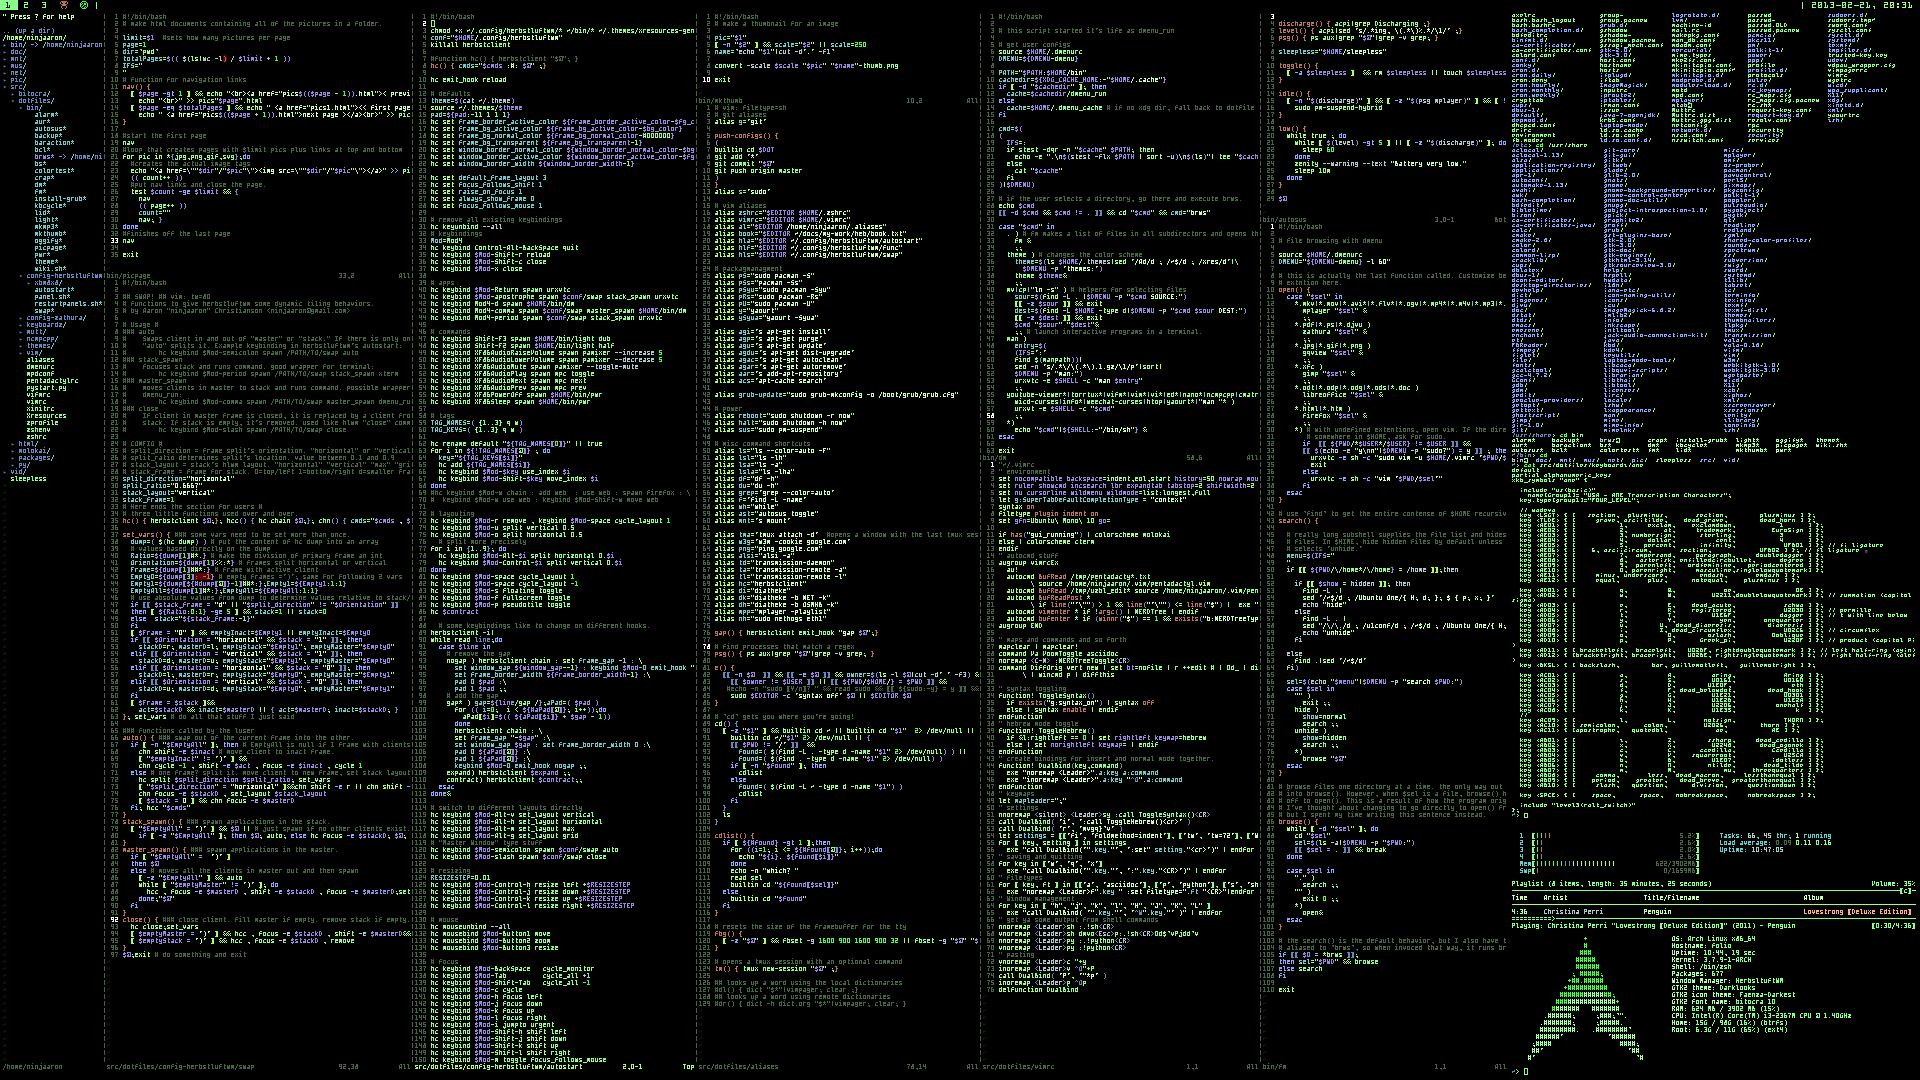 Linux Archlinux Terminal computer system programming wallpaper 1920x1080